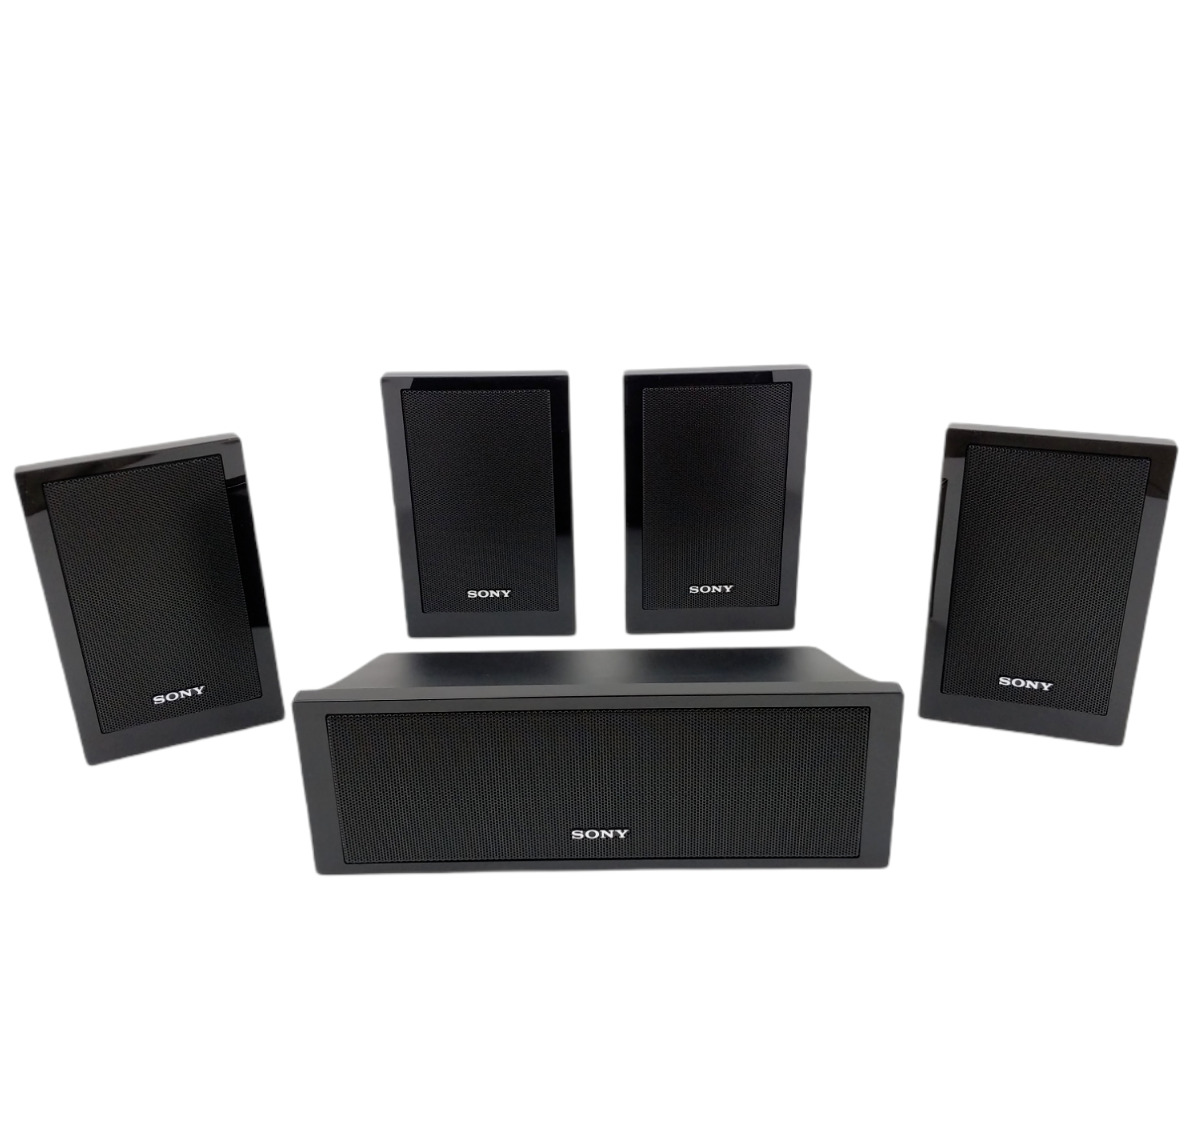 Set Of 5 Sony Surround Sound Speaker System SS-CT101 Center / SS-TS102 (4). Buy it now for 69.95